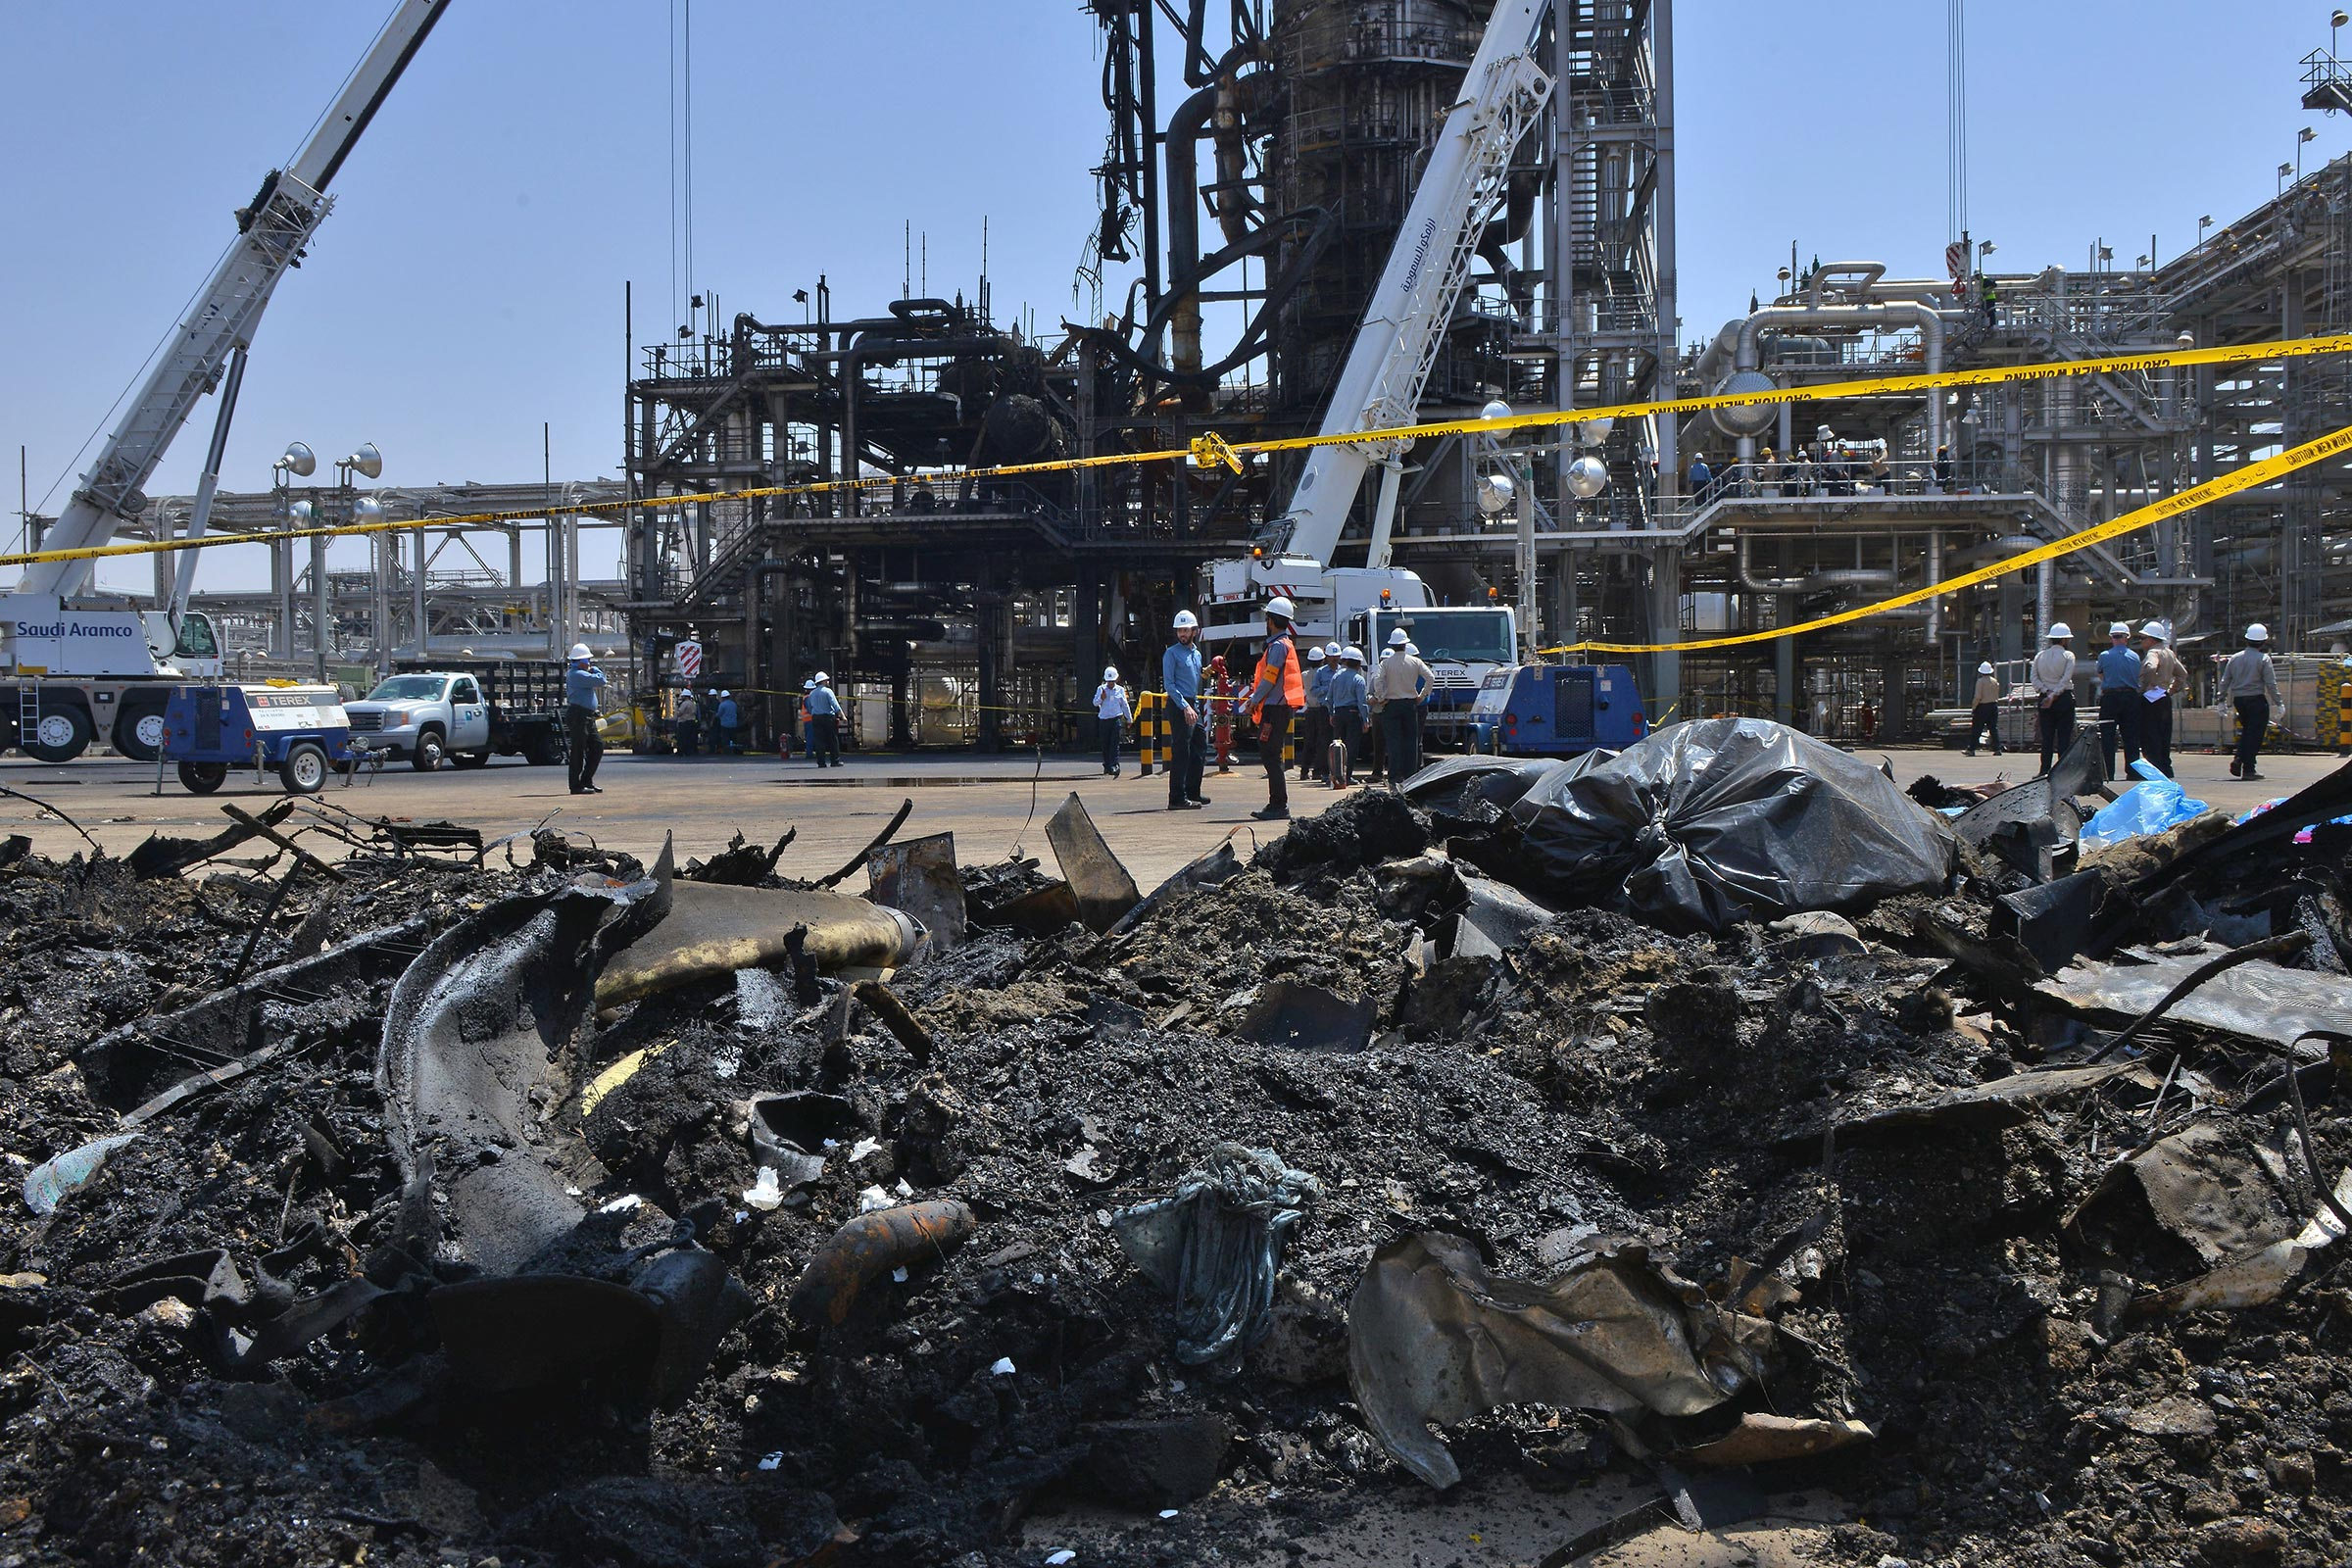 A destroyed installation in Saudi Arabia's Khurais oil processing plant on Sept. 20, 2019.